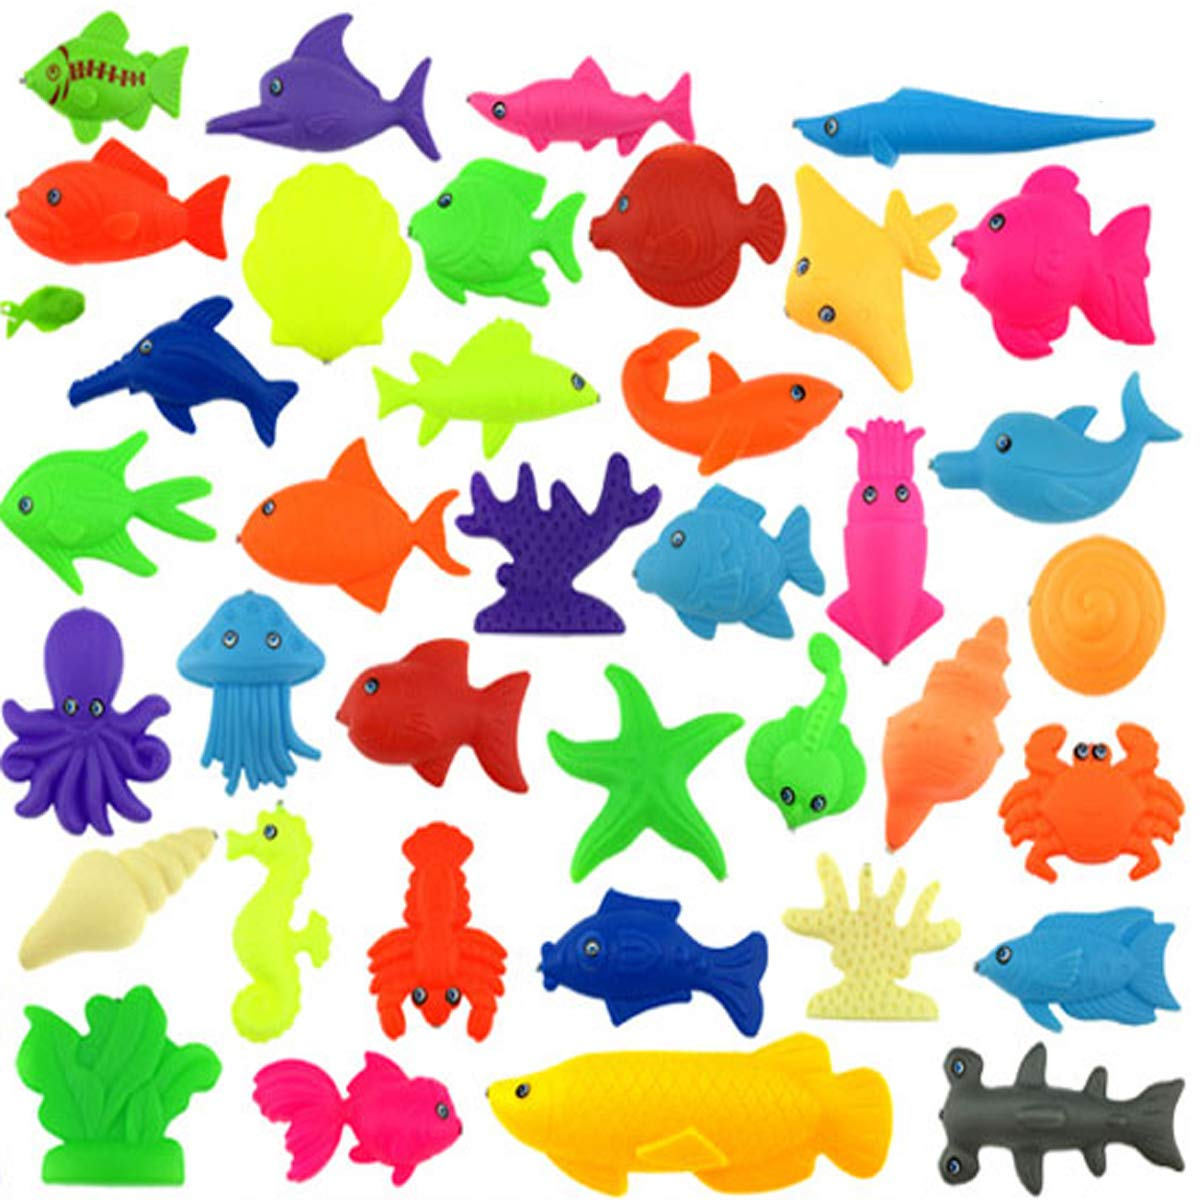 Waterproof Floating Fishing Play Set in Bathtub Pool Bathtime Learning Education Toys For Boys Girls Toddlers Fishing Game For Kids Random Styles CloverTale 65 Pieces Magnetic Fishing Toys Set Baby Bath Toys